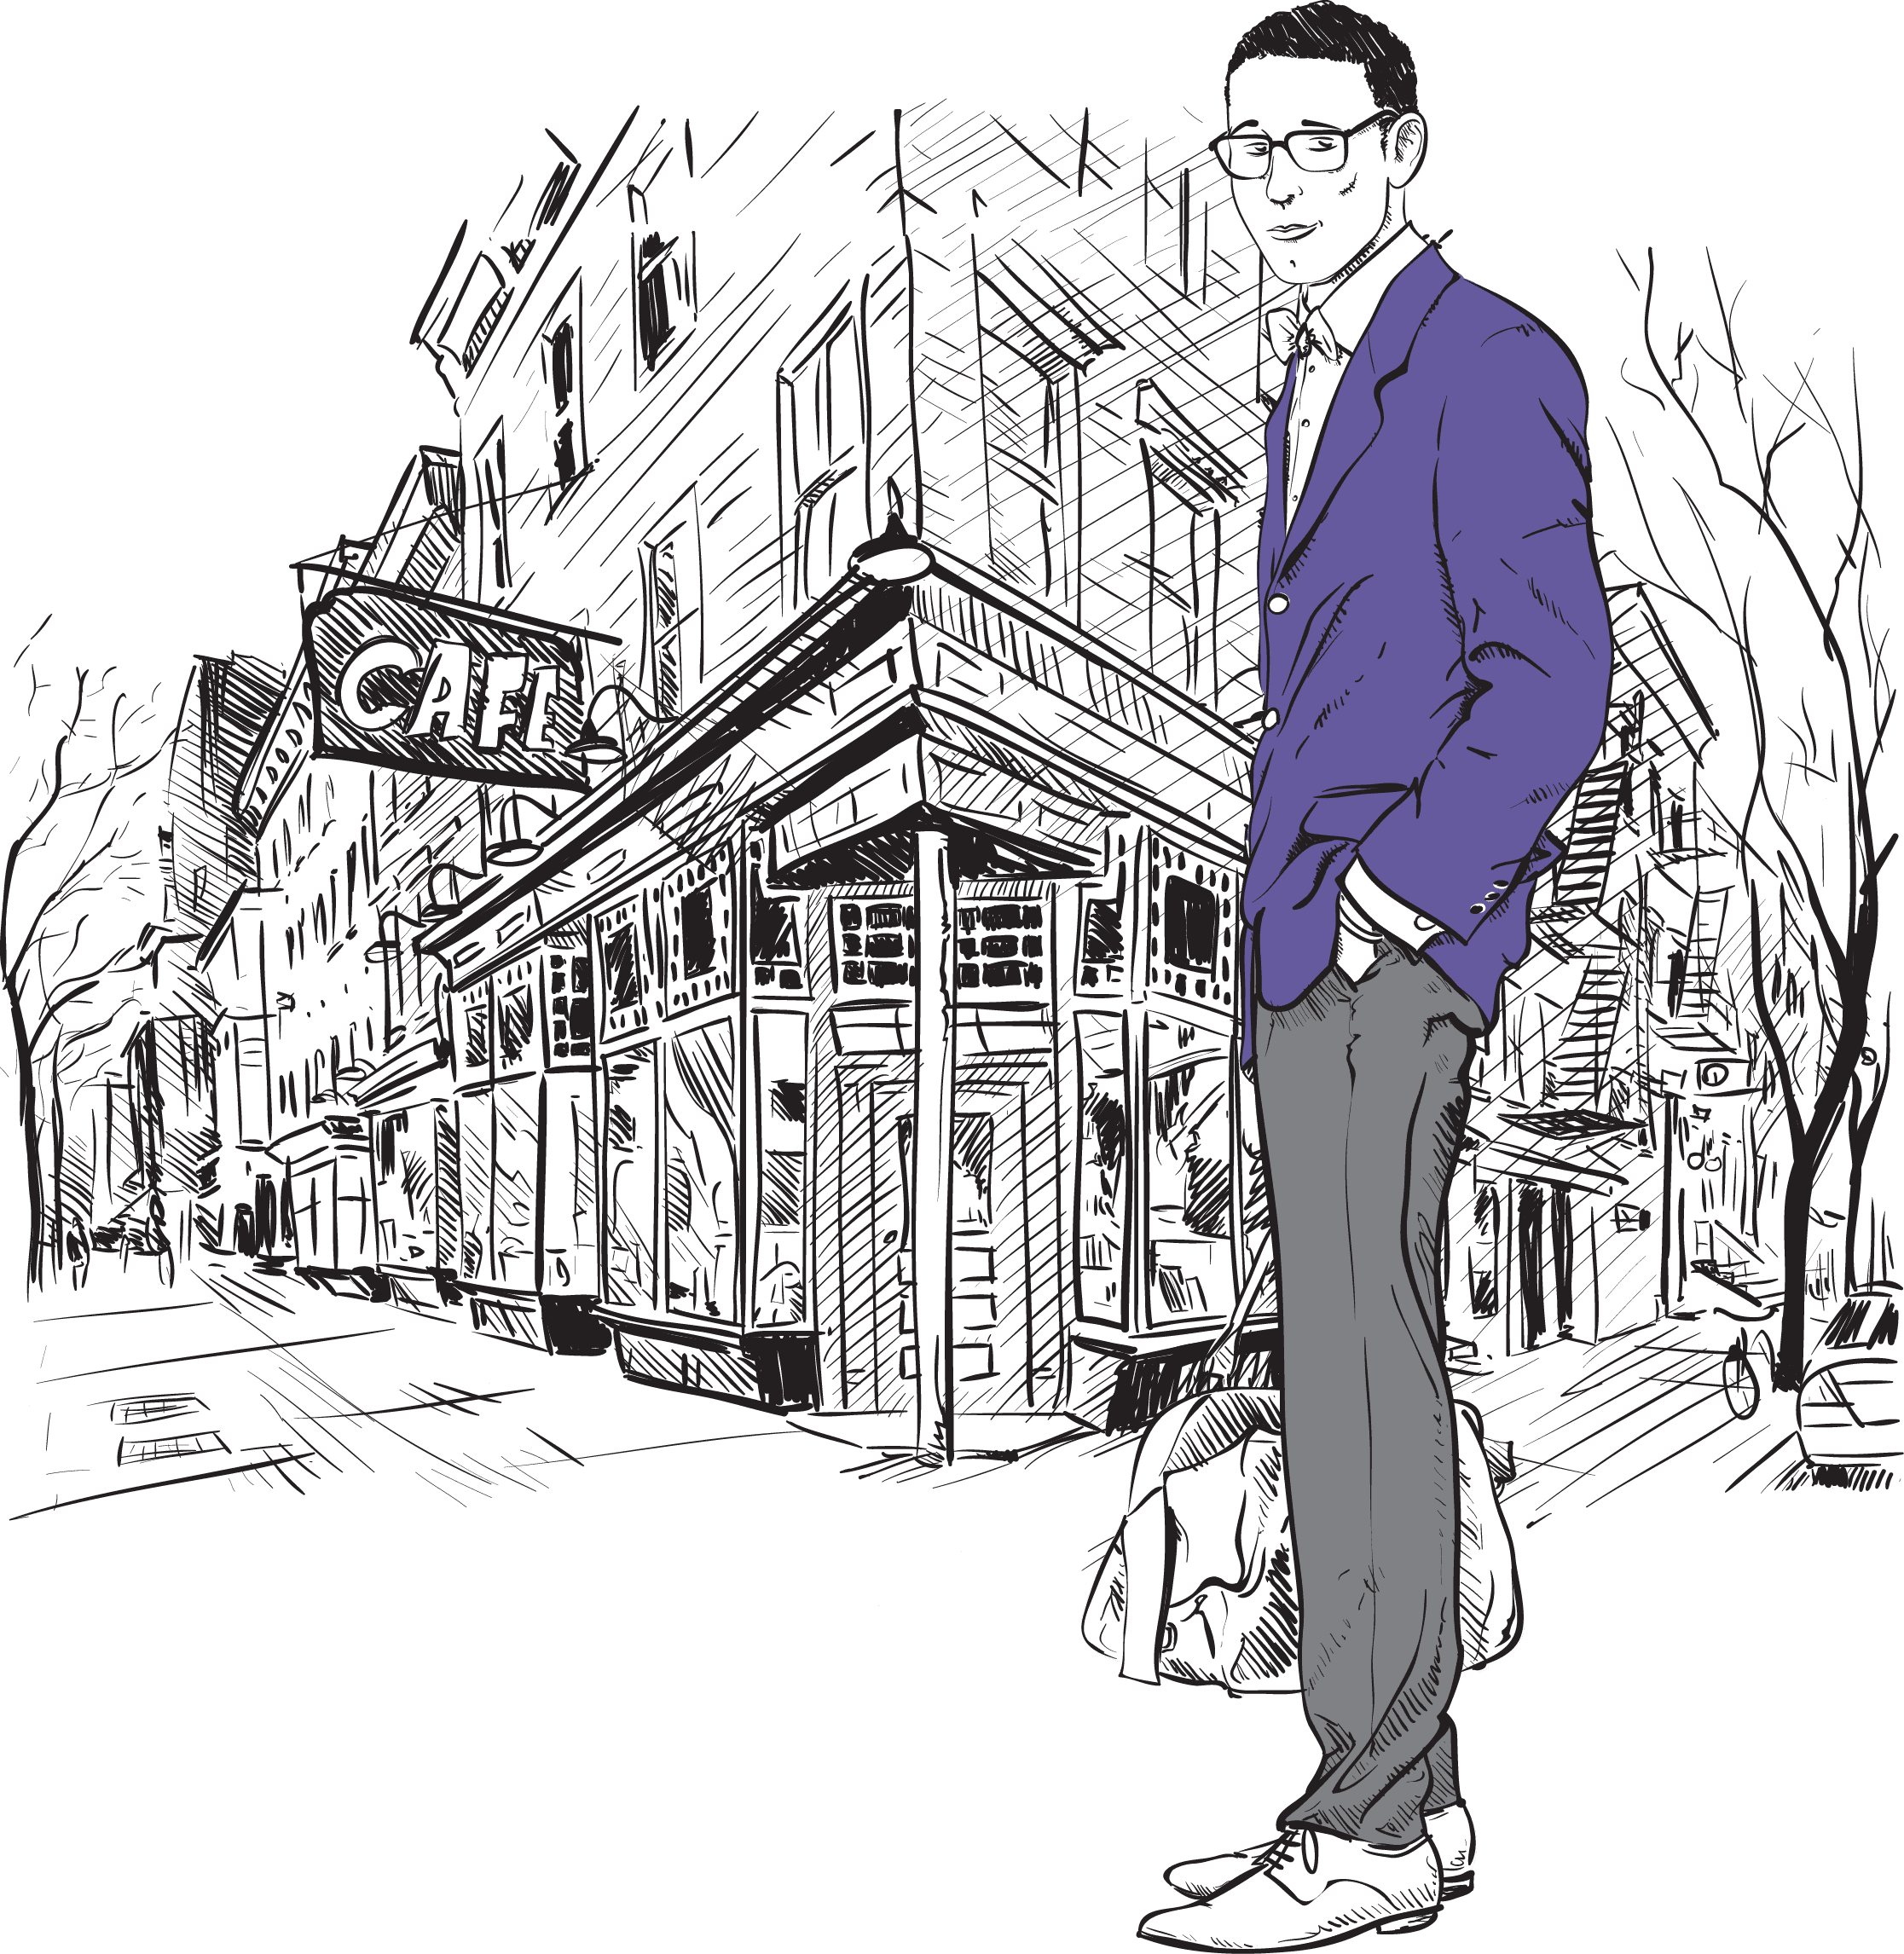 fashion-men-with-bag-and-glasses-in-sketch-style-on-a-street-cafe-backgroun_7k-yQL [Converted]